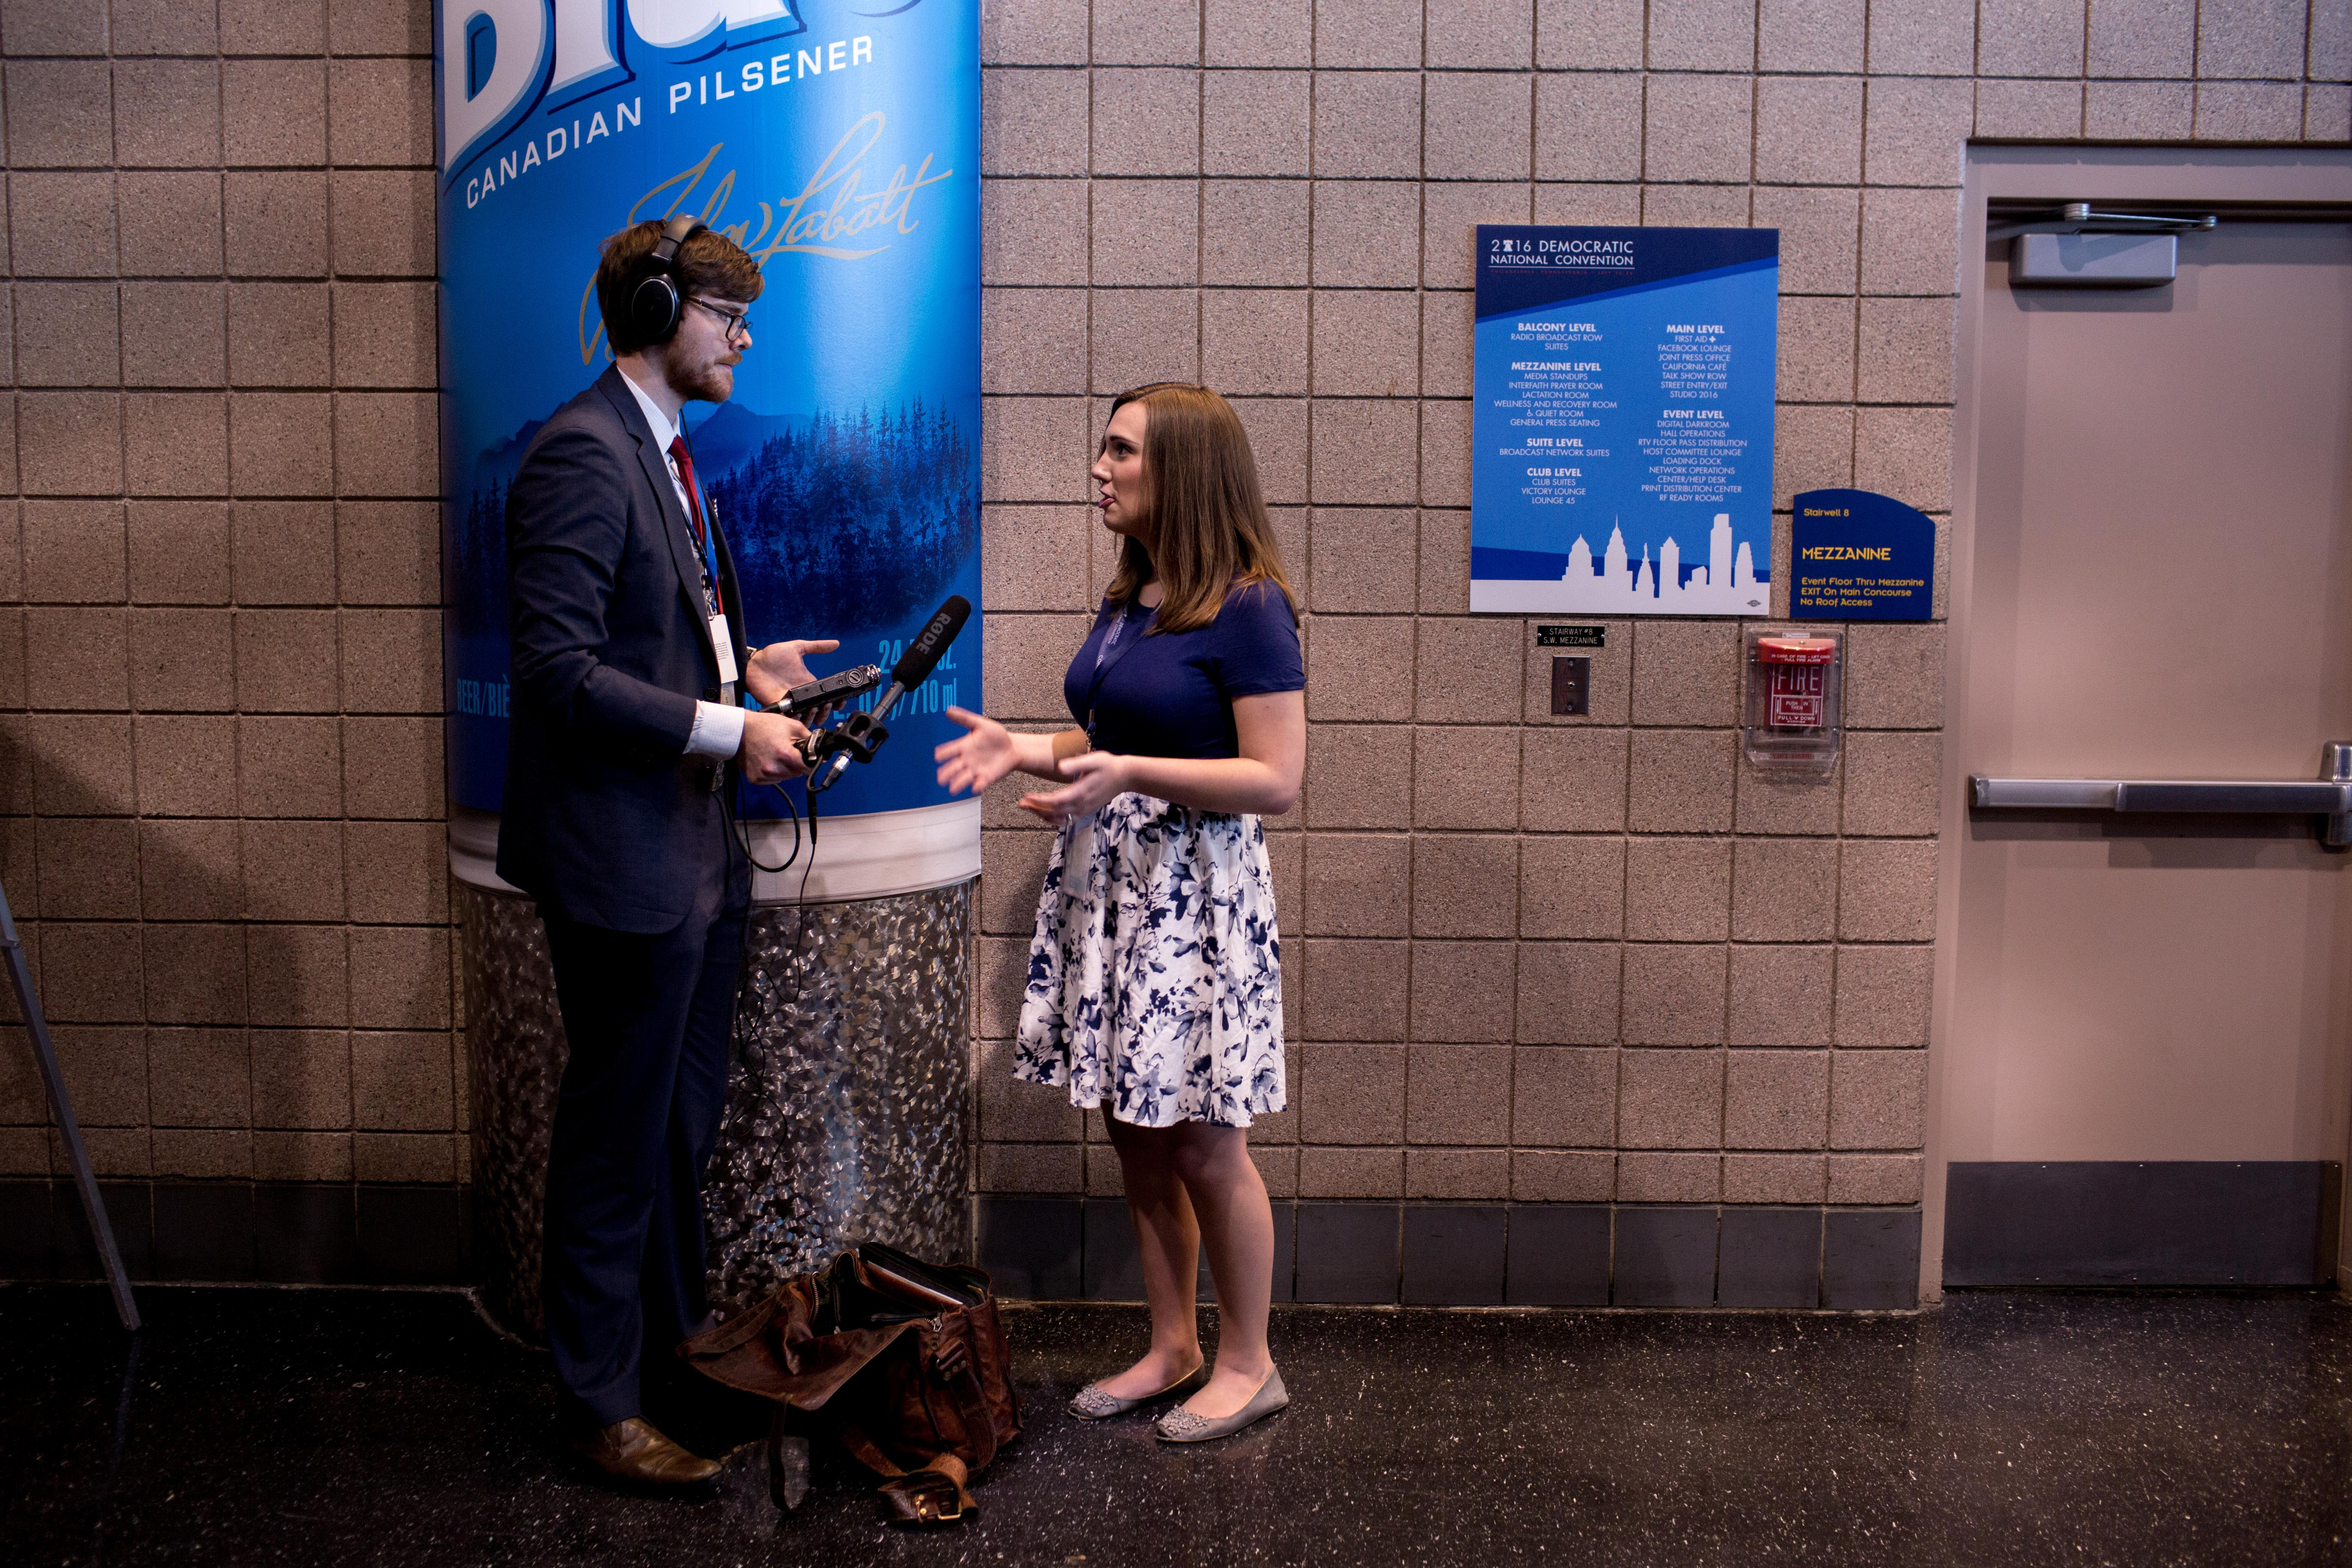 Sarah McBride is interviewed by a radio journalist at the Wells Fargo Center where she is attending Democratic National Convention on July 25, 2016 in Philadelphia.